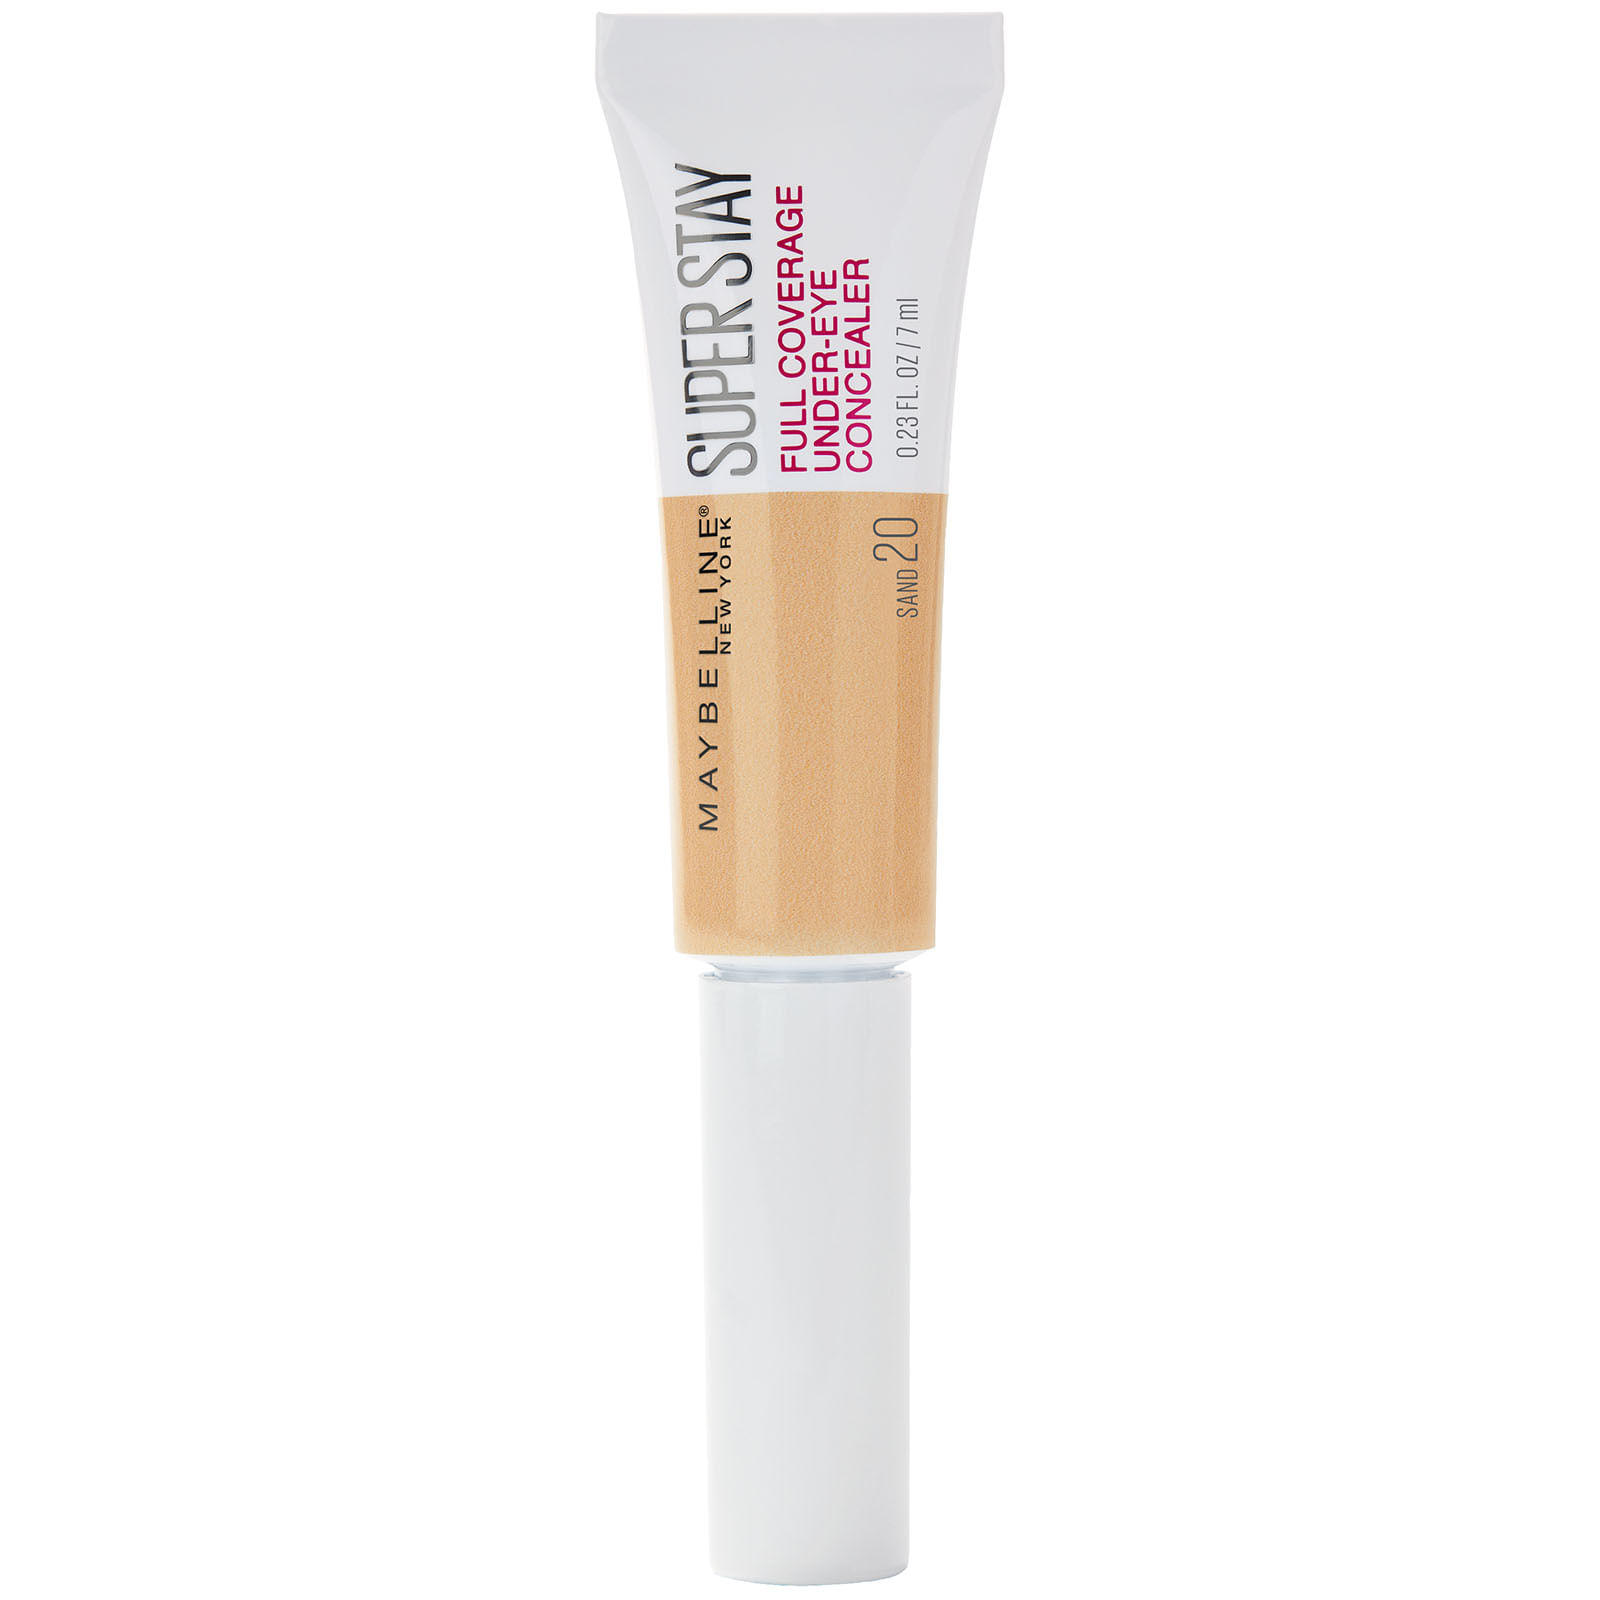 Corrector Super Stay Full Cover 20 Sand